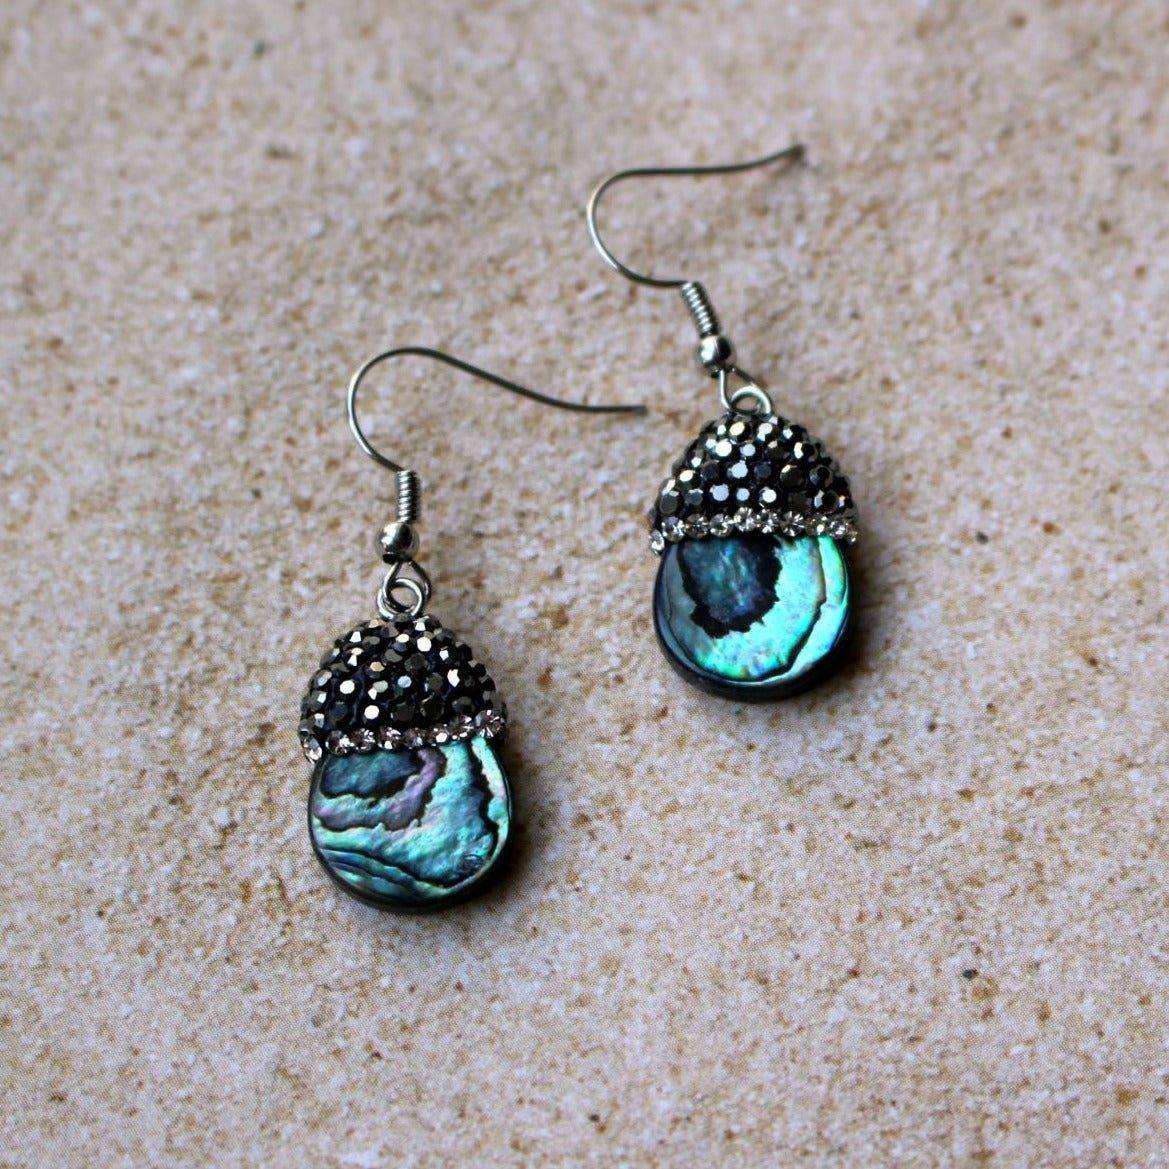 Abalone Shell with Rhinestone Drop Earrings